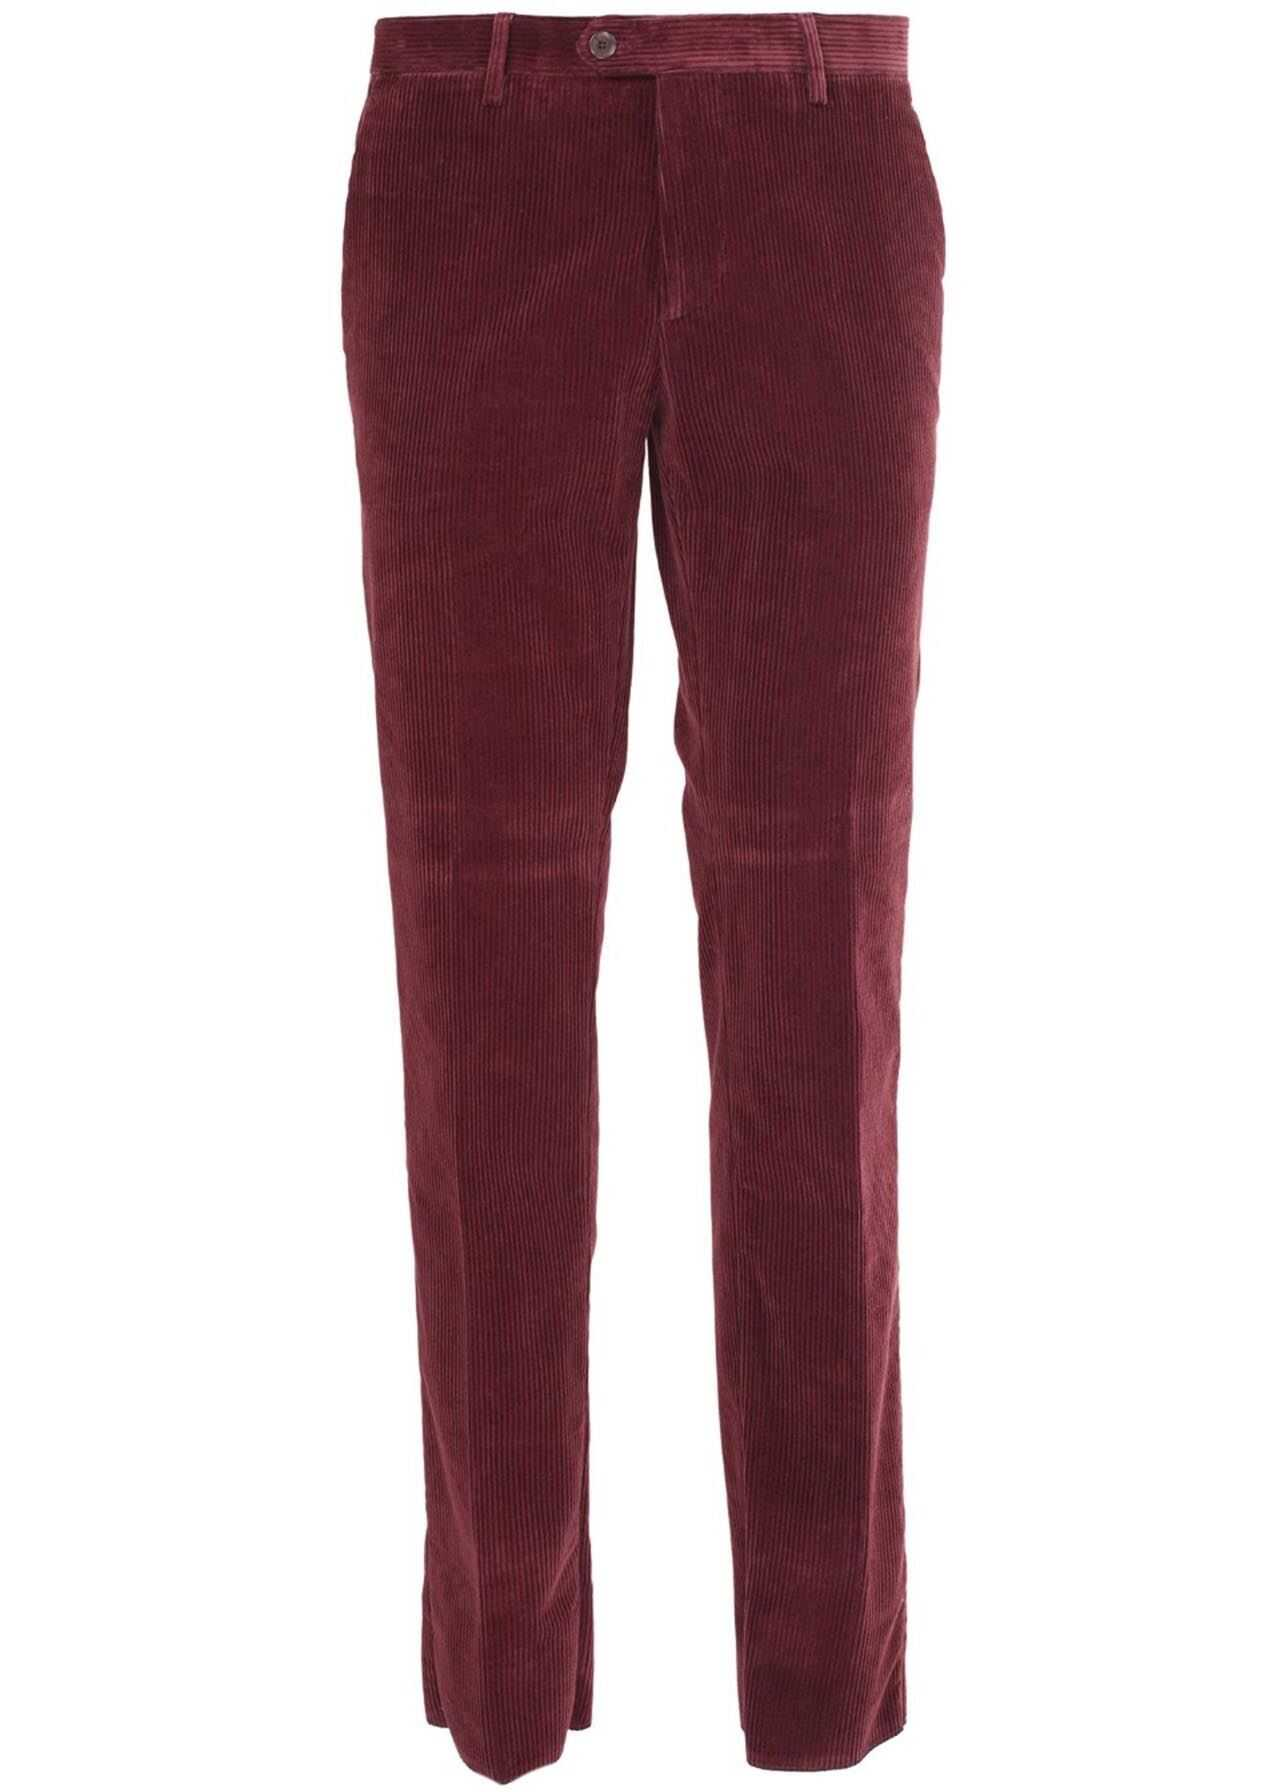 ETRO Corduroy Trousers In Red Red imagine